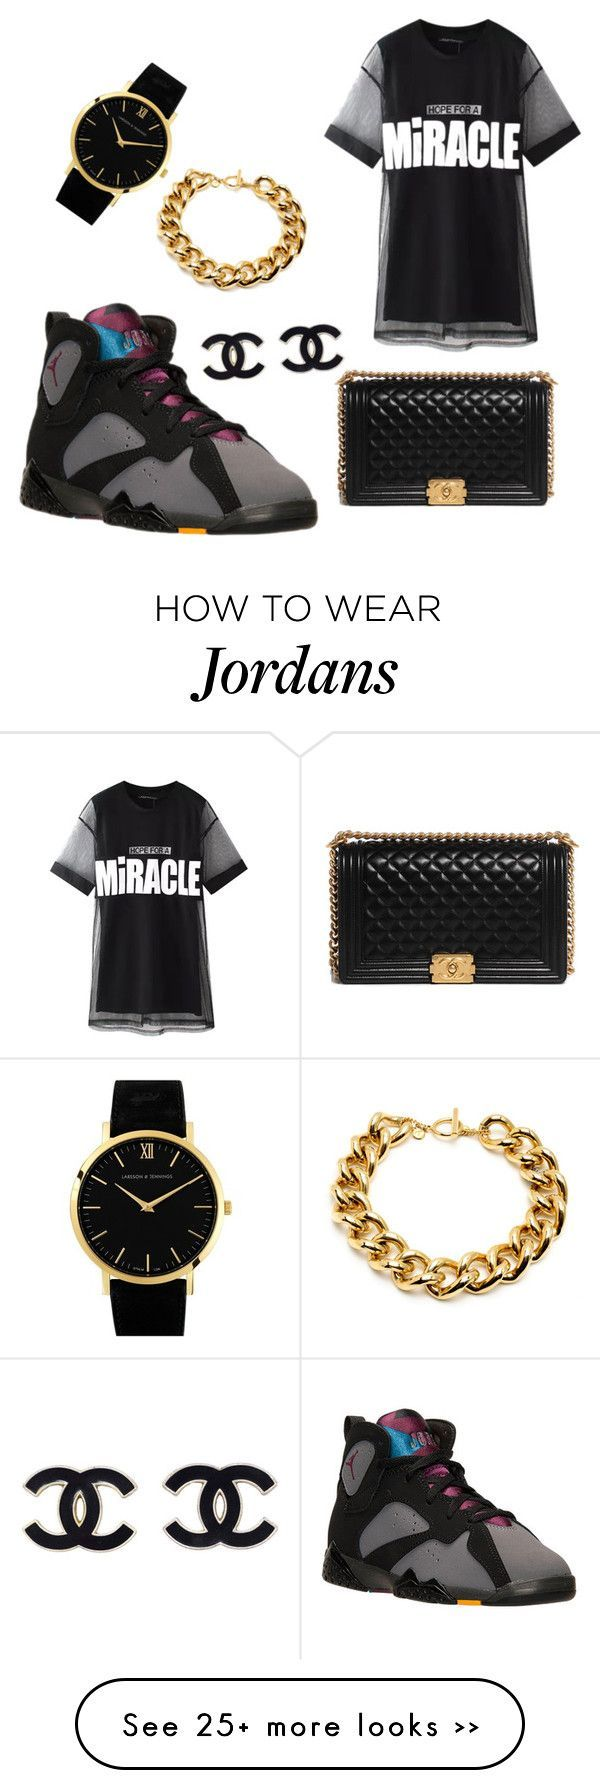 """Untitled #1"" by kamdynhfigc on Polyvore"